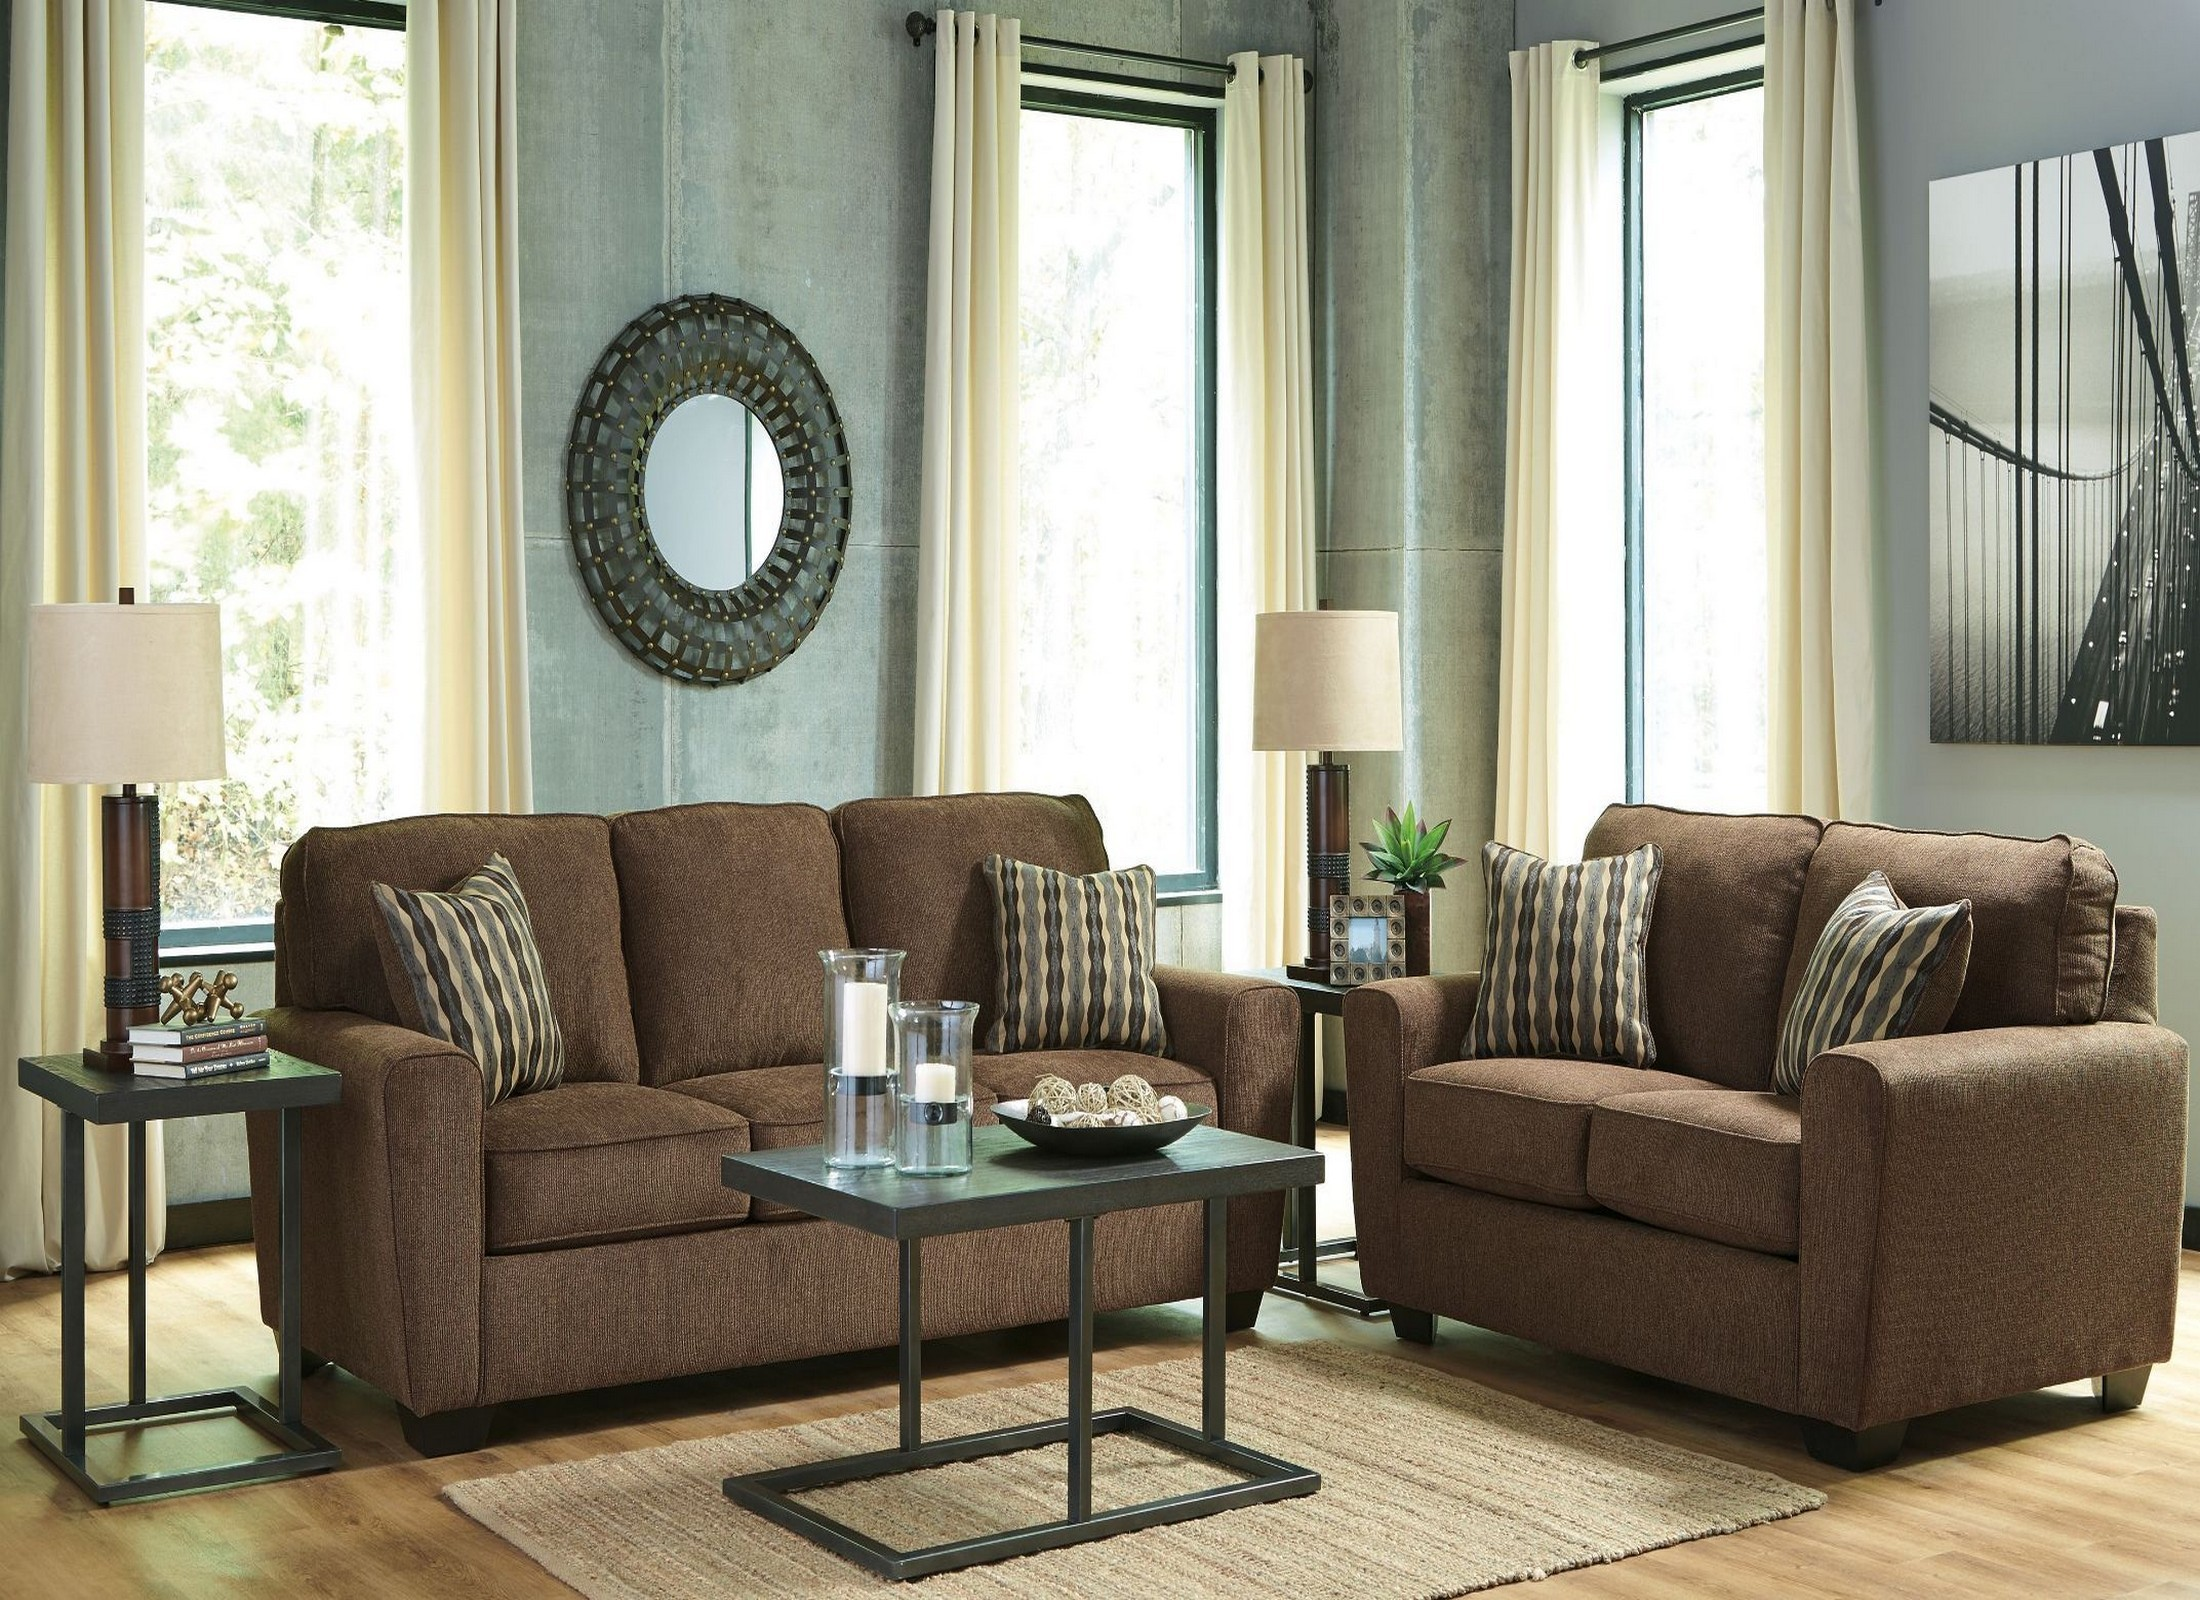 Landoff Walnut Living Room Set From Ashley Coleman Furniture